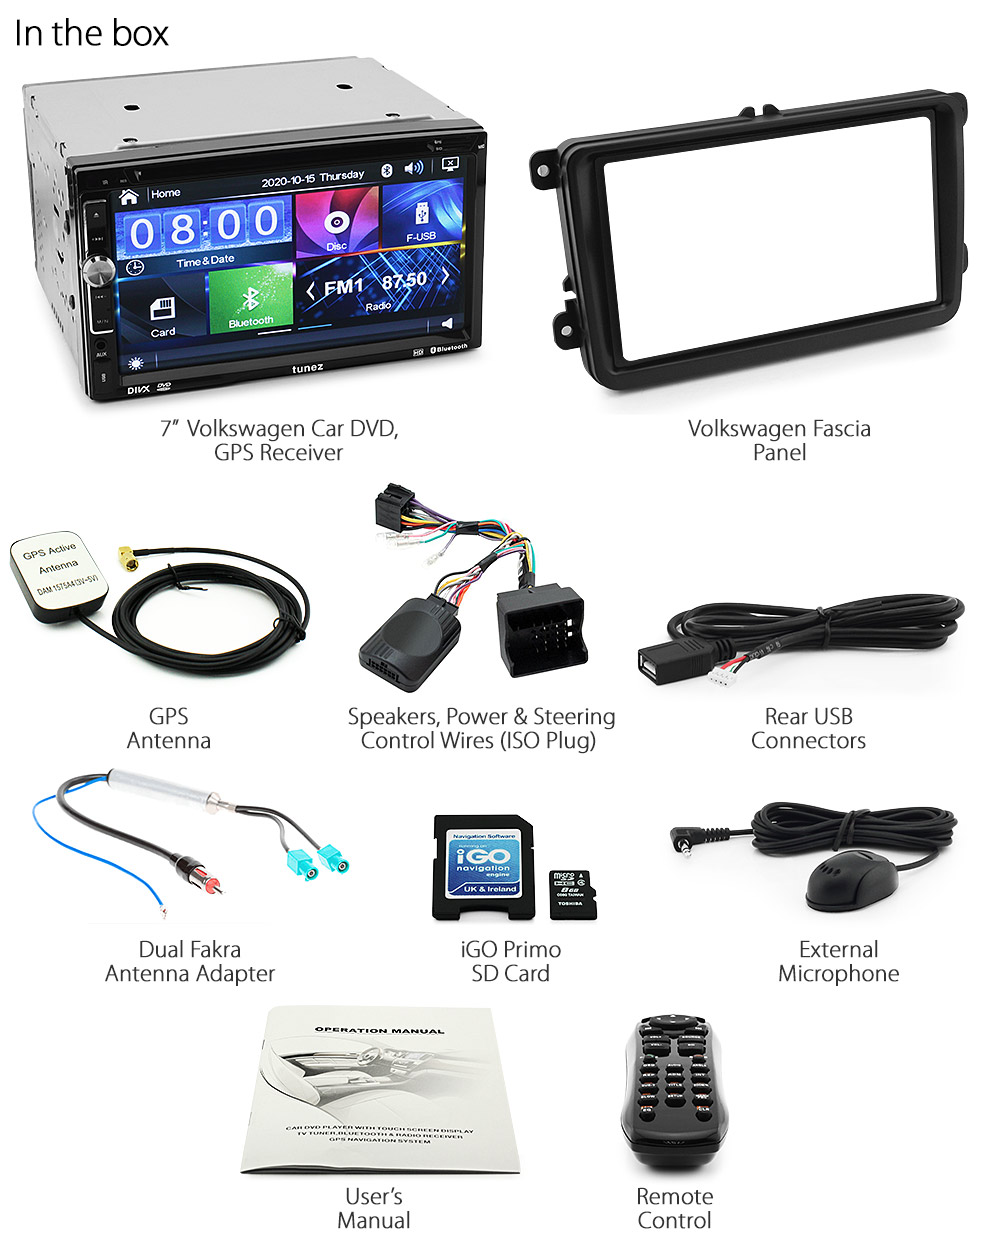 Volkswagen Vw Caddy Polo Car Dvd Gps Mp3 Player Stereo Radio Head Rover Discovery In Dash Wiring Harness Kit Ebay Also Rns 510 Vw08gps Amarok 2h Caravelle Eos 1f Golf Mk5 Mk6 Jetta Multivan Passat Cc B6